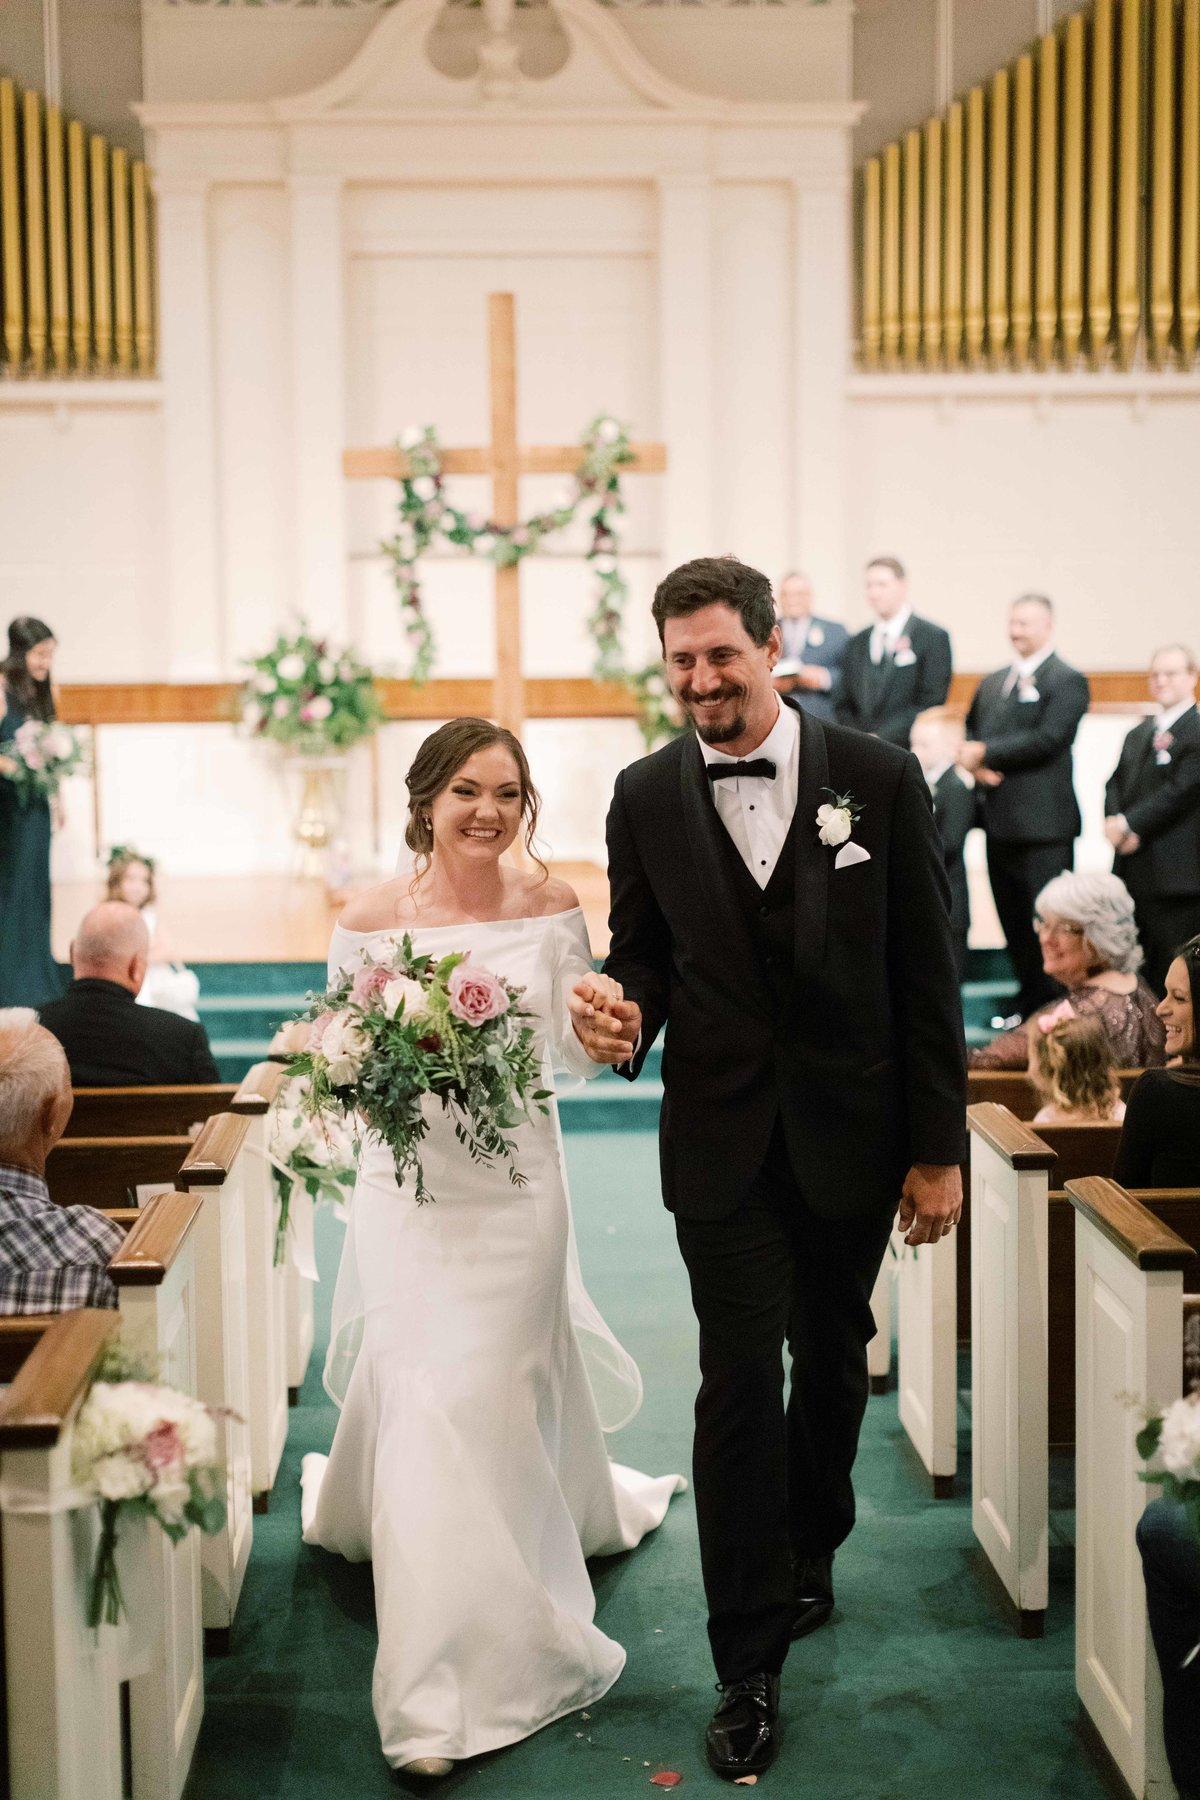 Angel_owens_photography_wedding_oliviarobert139